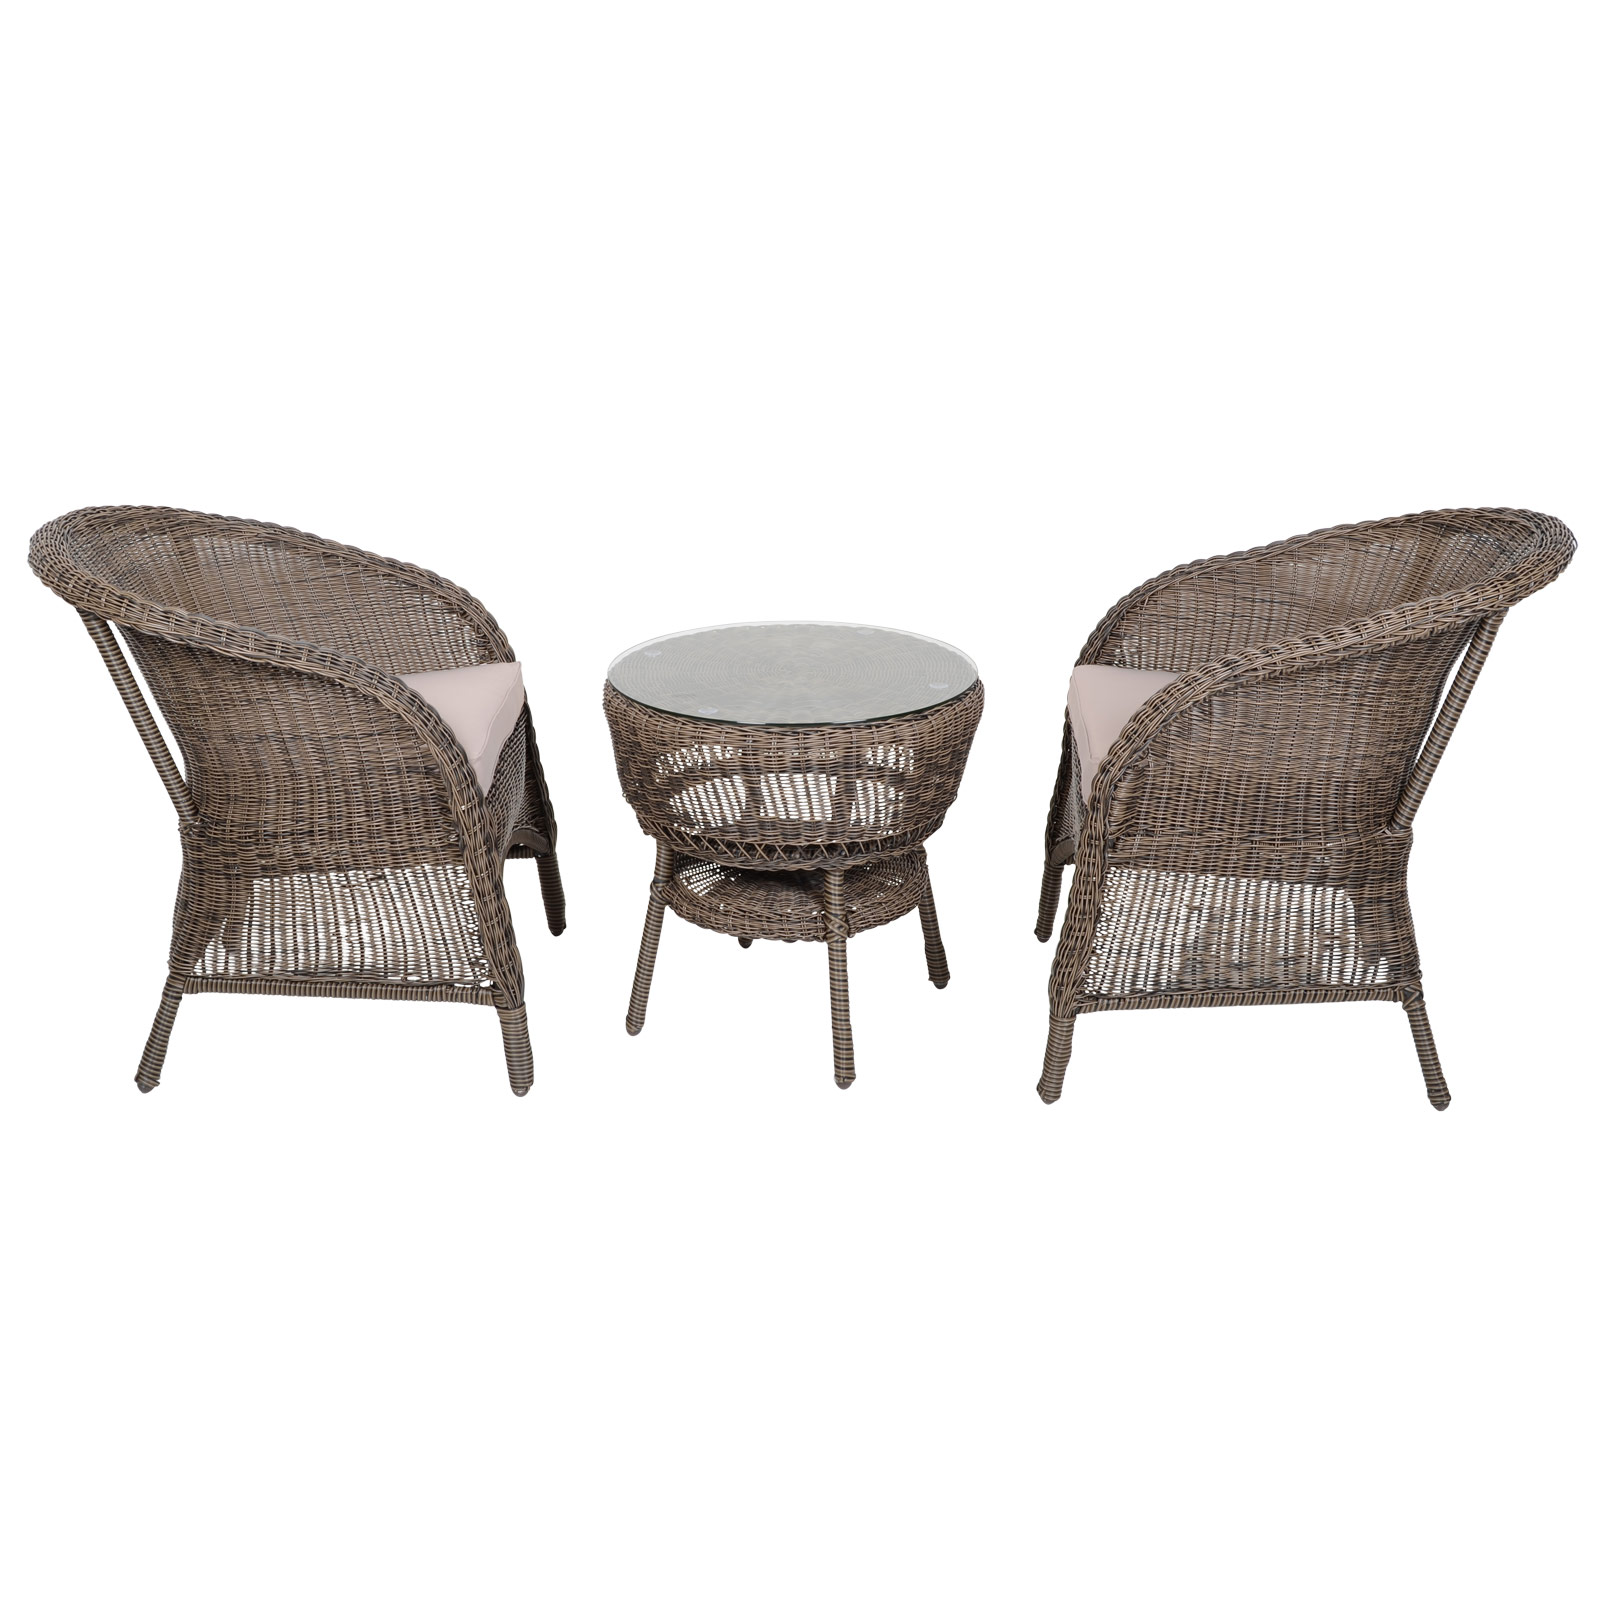 2 chairs and table rattan benefits of chair massage marseille 3 piece garden dining set with 2x